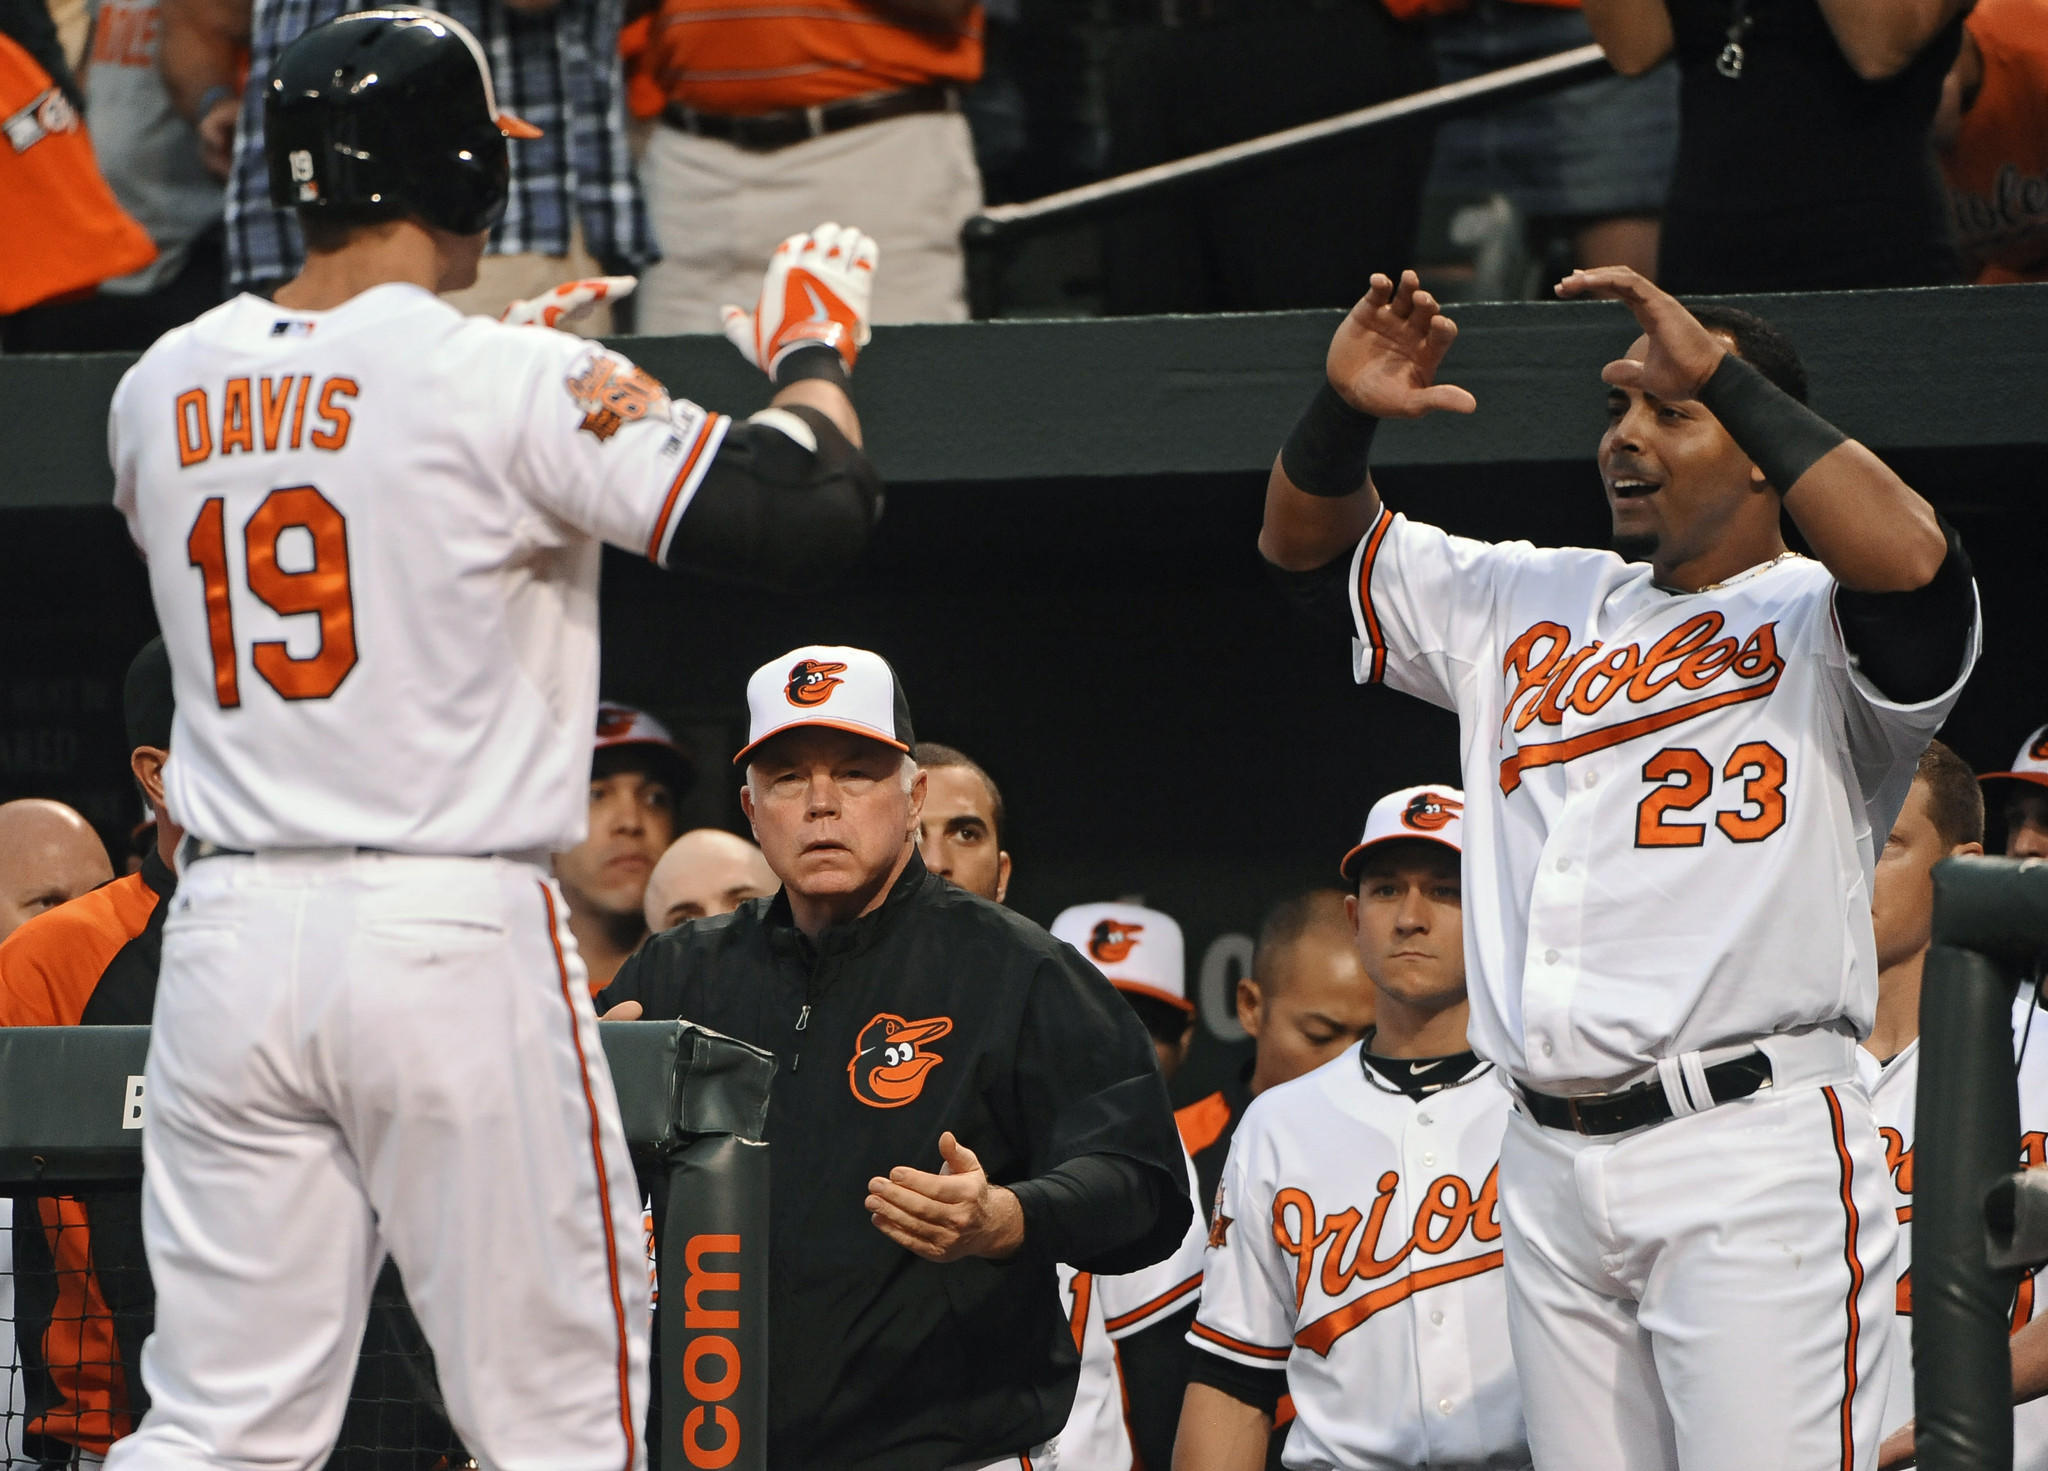 Orioles first baseman Chris Davis, left, receives congratulations from designated hitter Nelson Cruz after hitting a two-run home run in the first inning against the Boston Red Sox at Camden Yards.